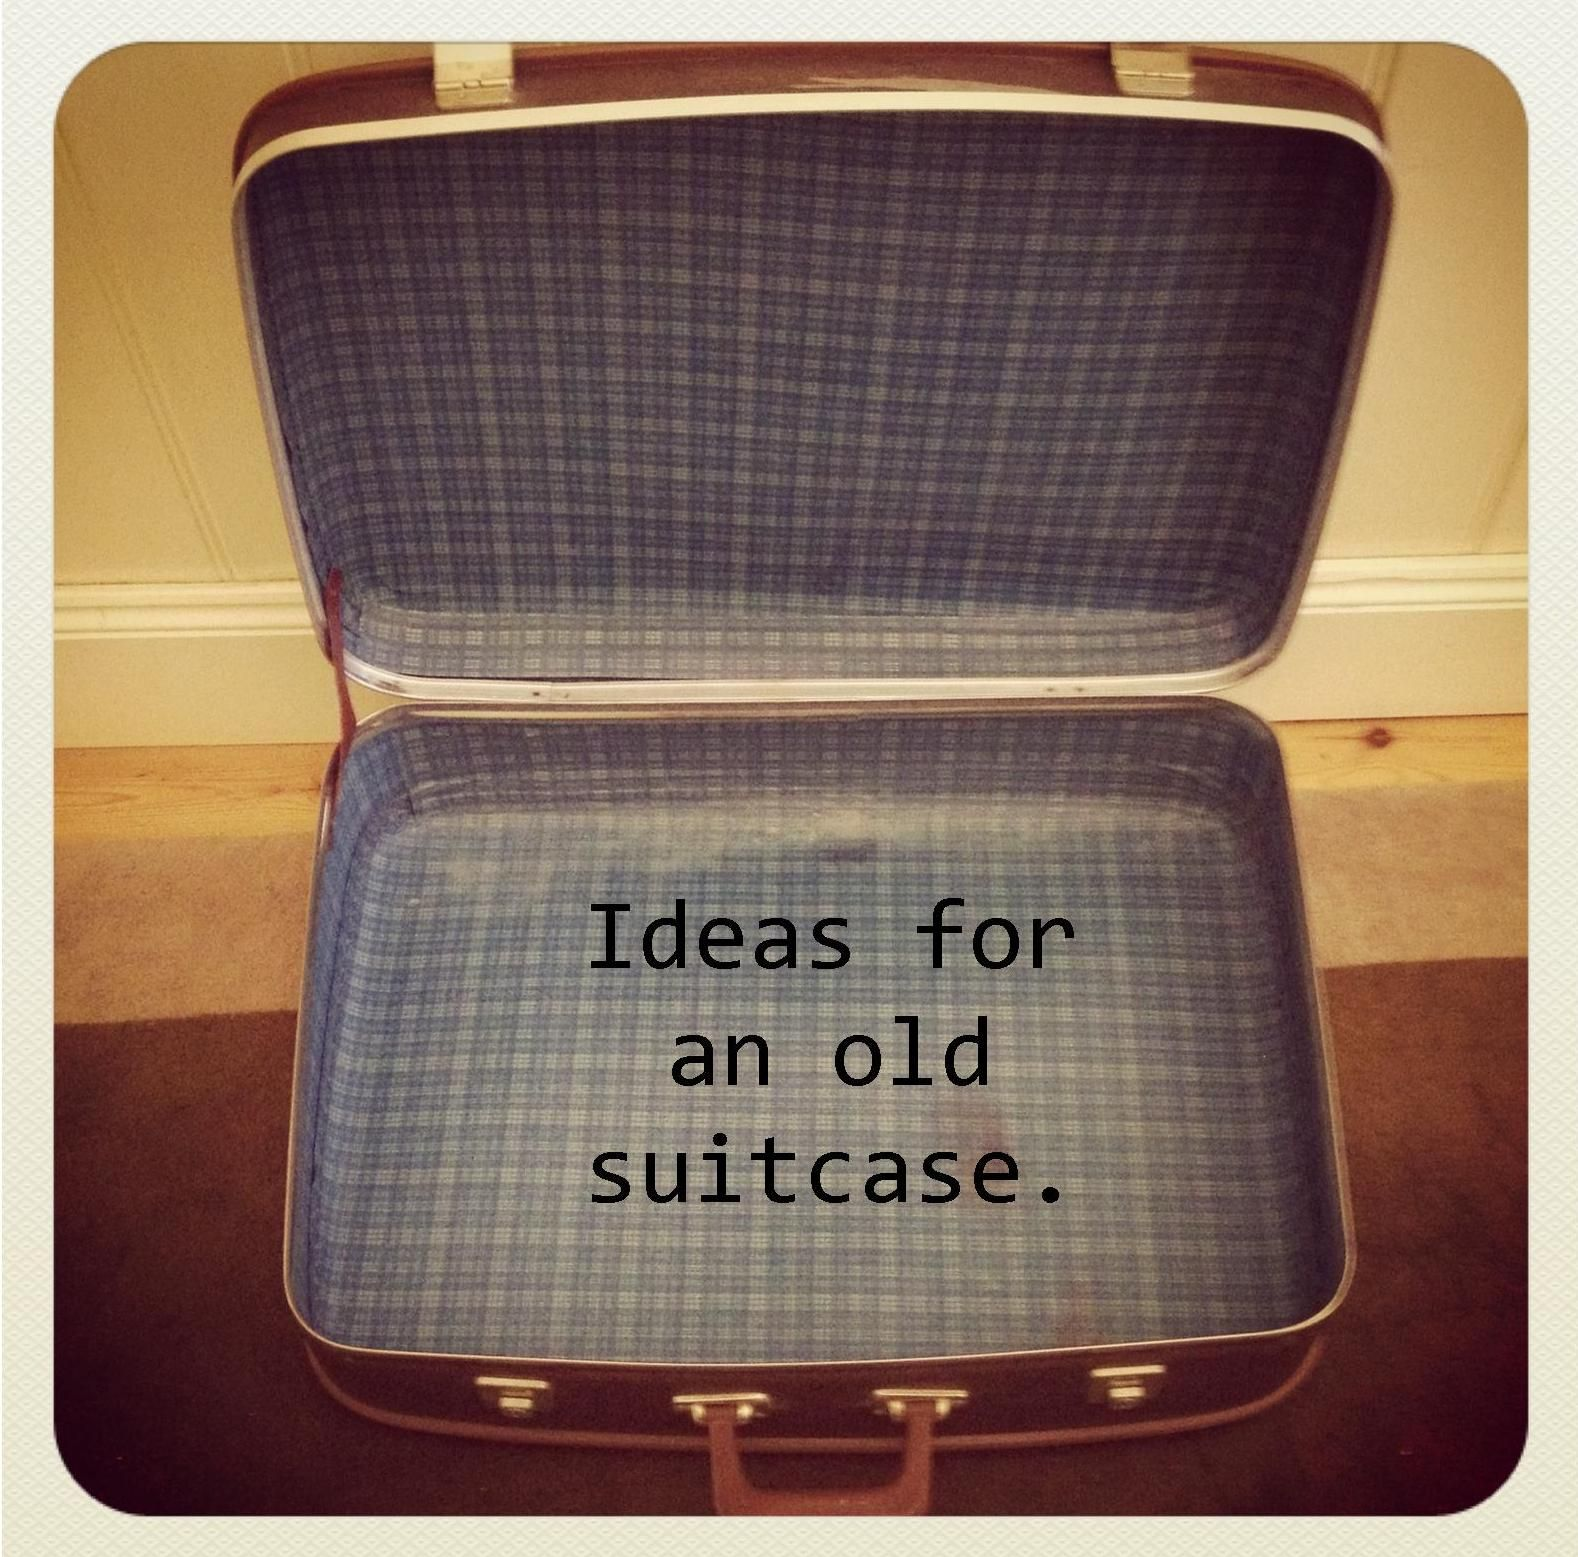 Old Suitcases Ideas For Old Suitcase Vintage Luggage Old Suitcase Old